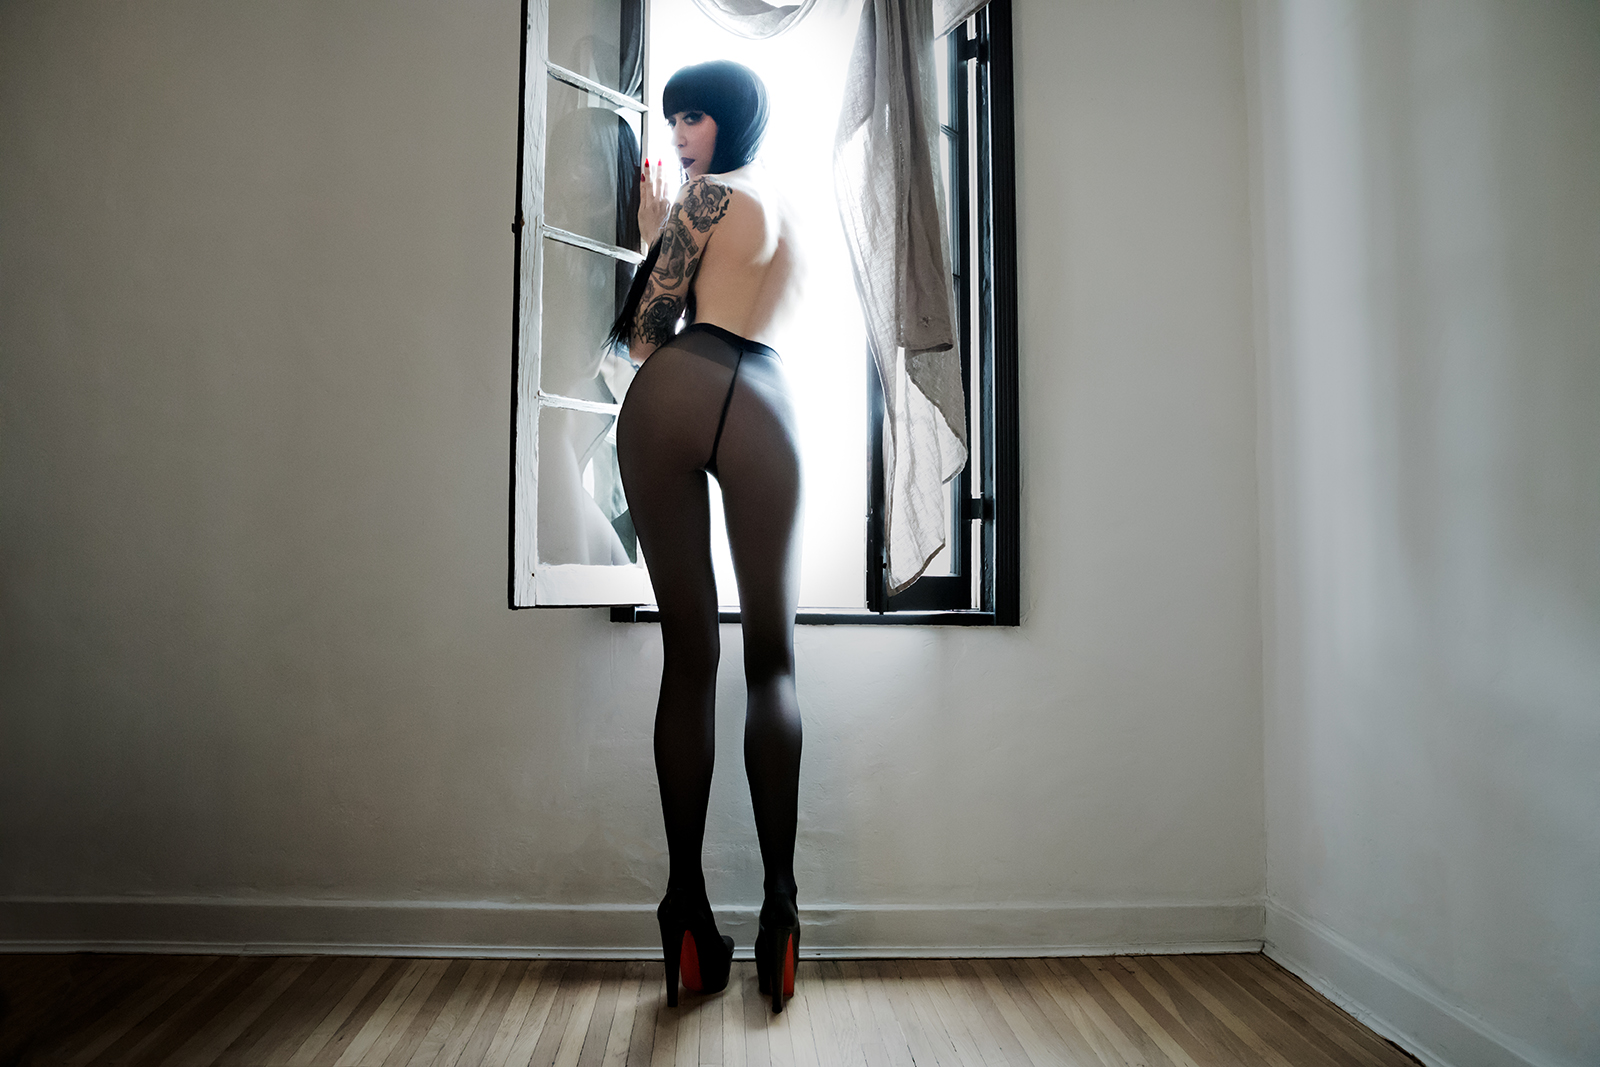 Ramona_Ryder_NYC_New_York_City_Brooklyn_Escort_Model_05.jpg